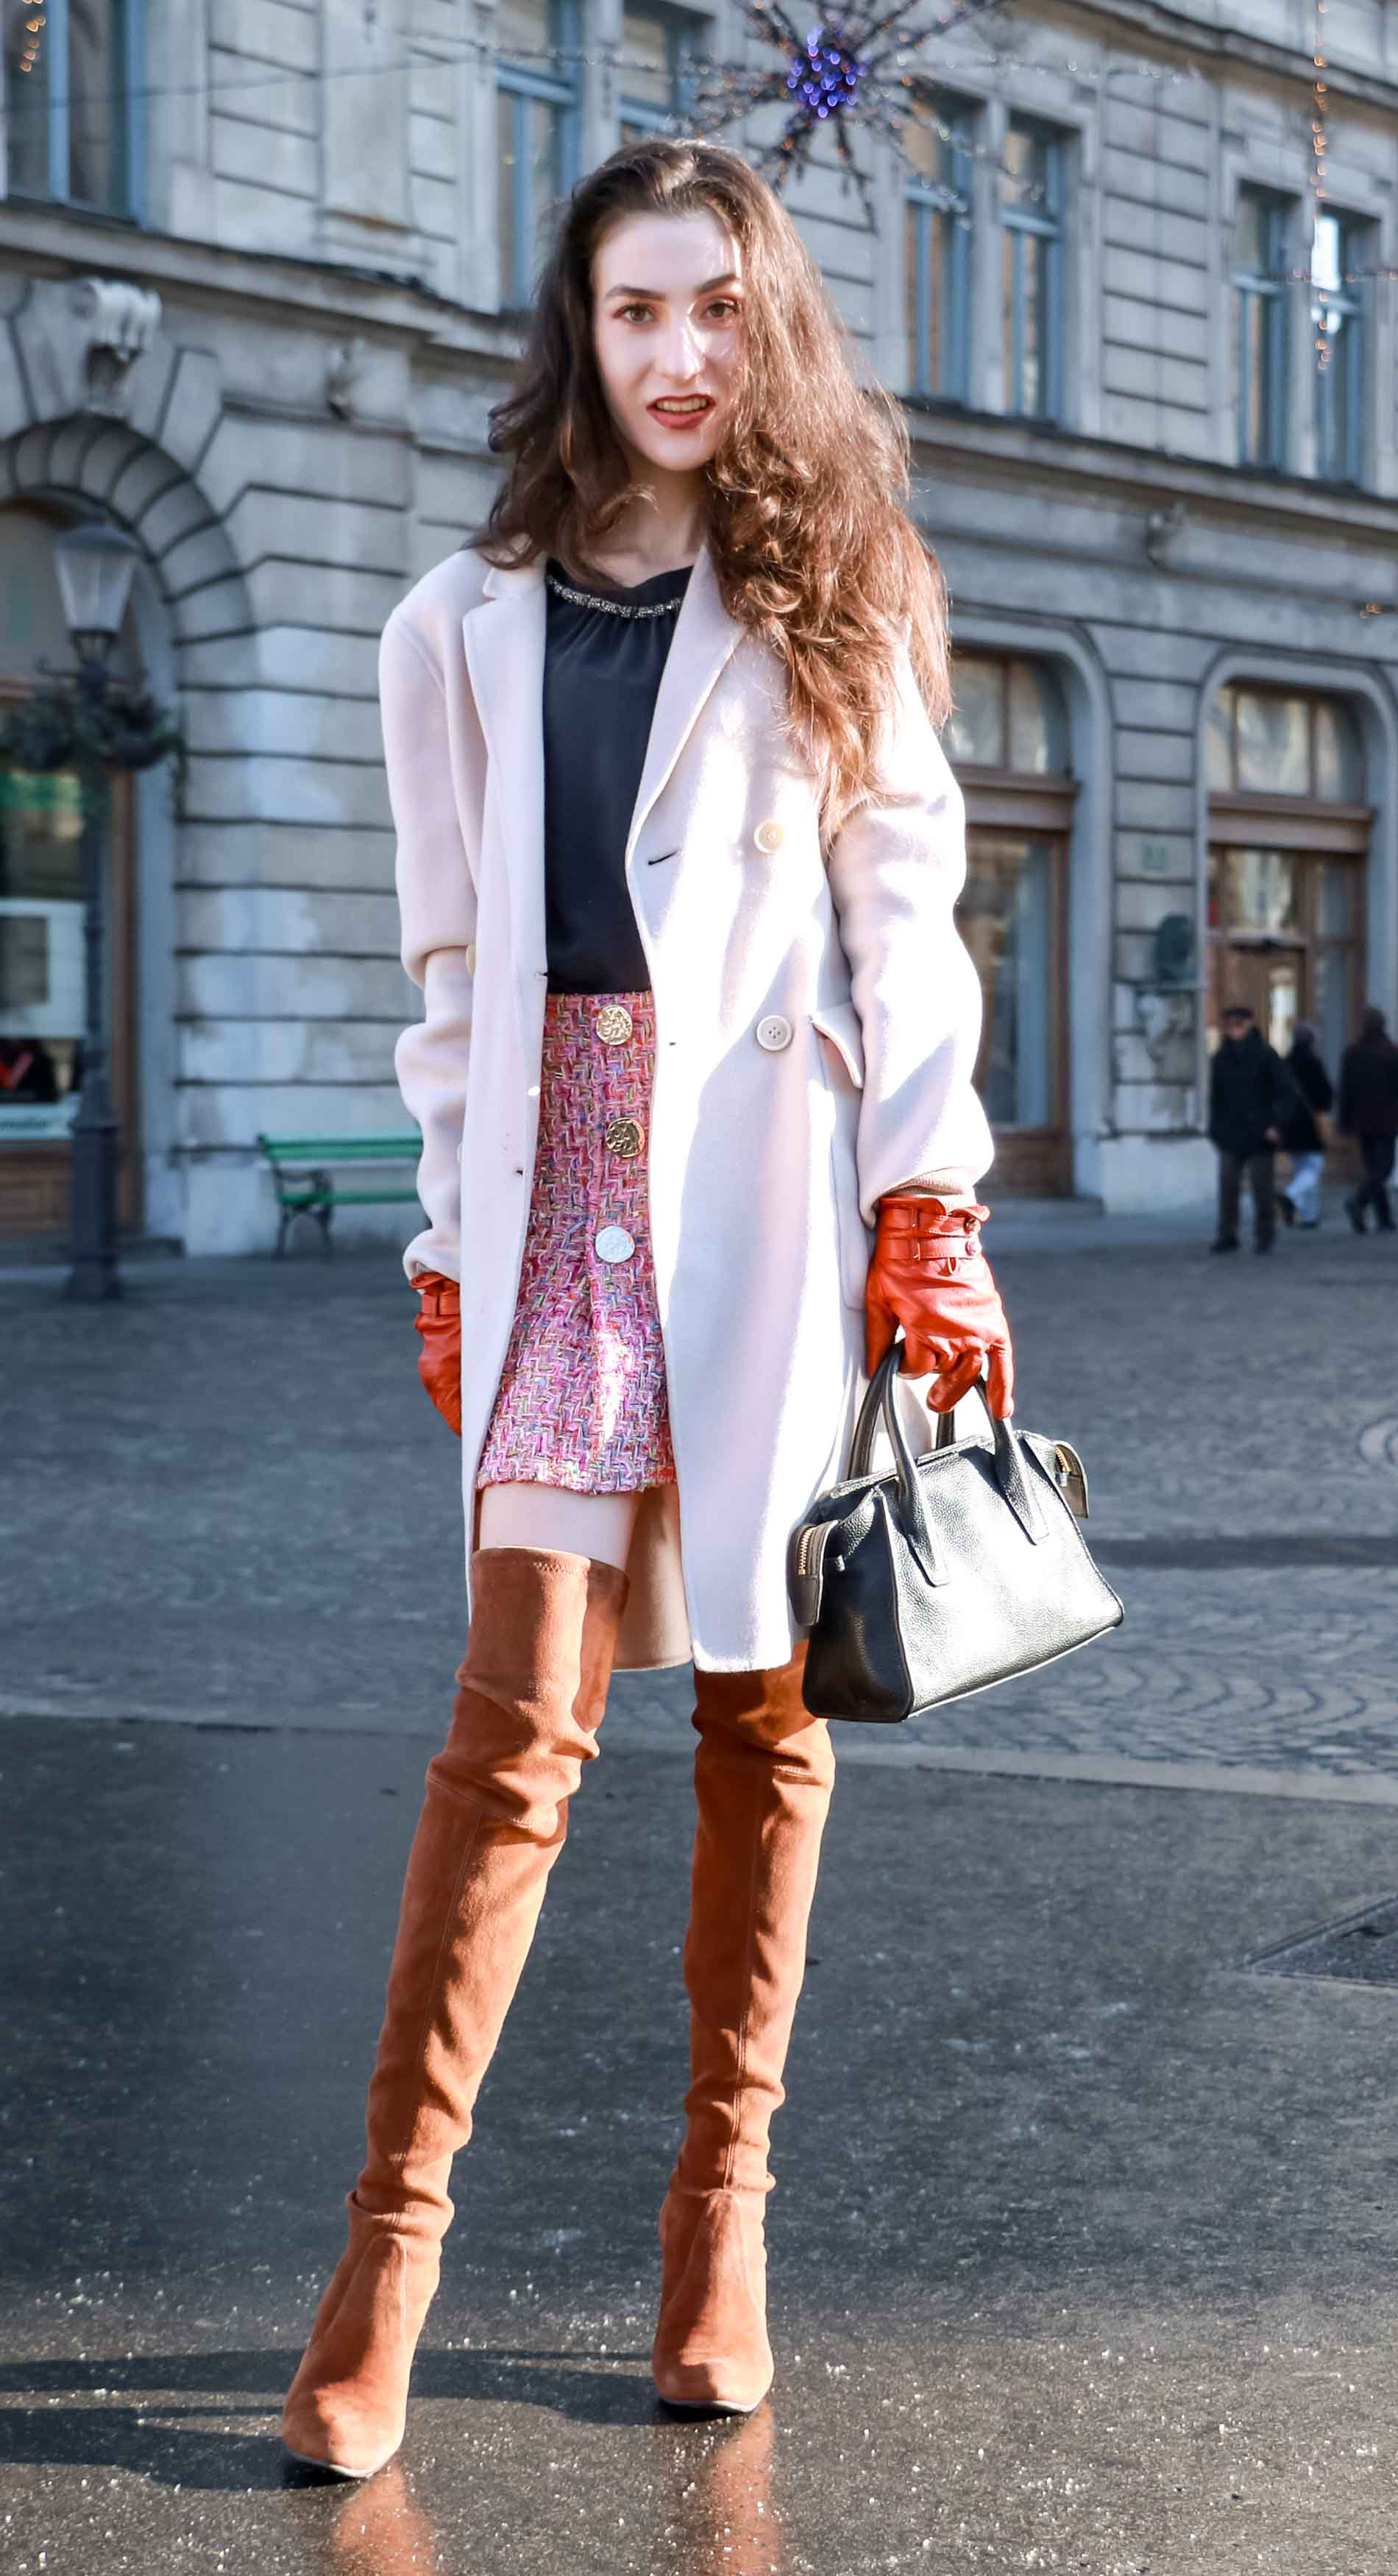 Fashion Blogger Veronika Lipar of Brunette from Wall Street wearing Storets pink tweed mini skirt, double breasted ivory coat from Weekend Maxmara, black silk blouse from Juicy couture, small black top handle bag, chestnut OTK boots from Stuart Weitzman this winter